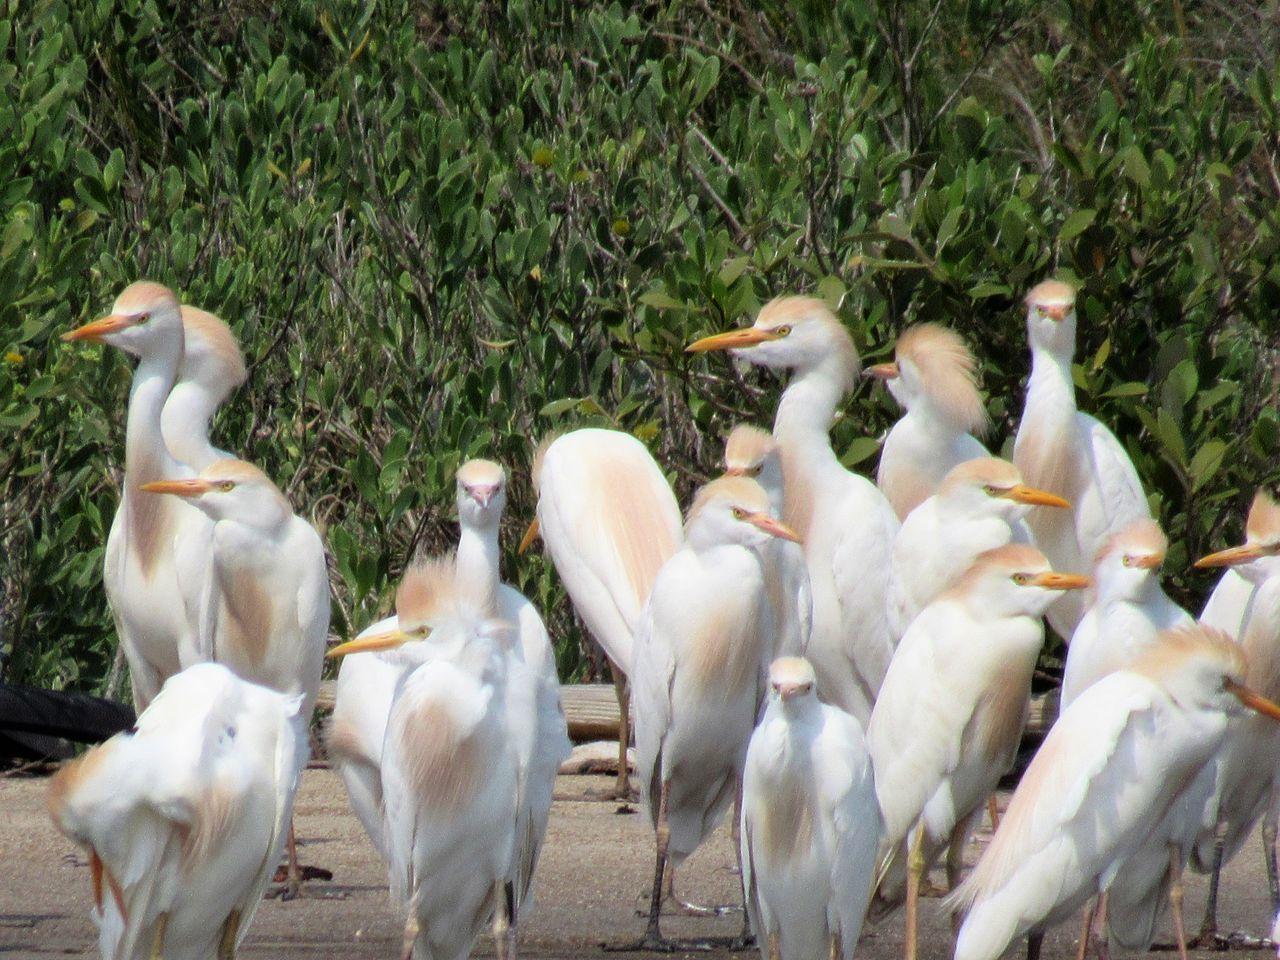 Cattle Egrets Baby Birds Close To Nature Furry Feathers Gulf Of Mexico Large Group Of Animals New Born Tropical Climate Premium Collection